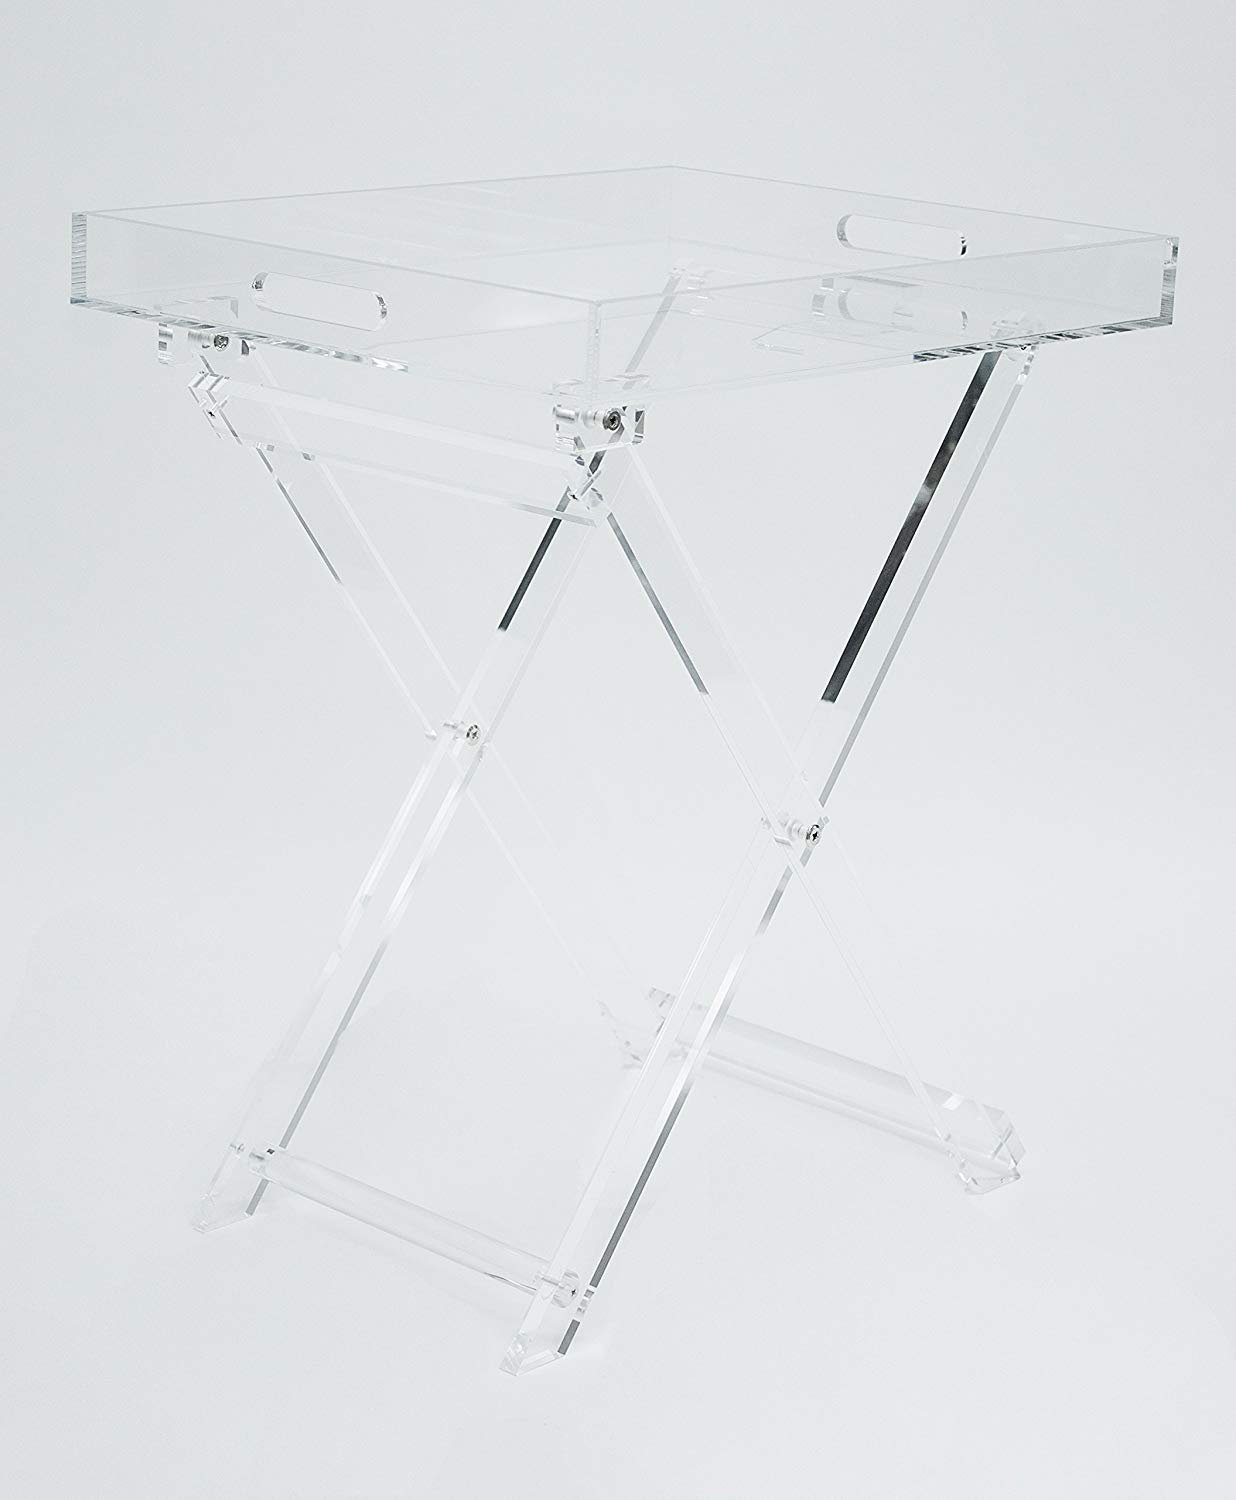 Acrylic Folding Tray Table - Modern Chic Accent Desk - Kitchen and Bar Serving Table - Elegant Clear Design - by Designstyles by Designstyles